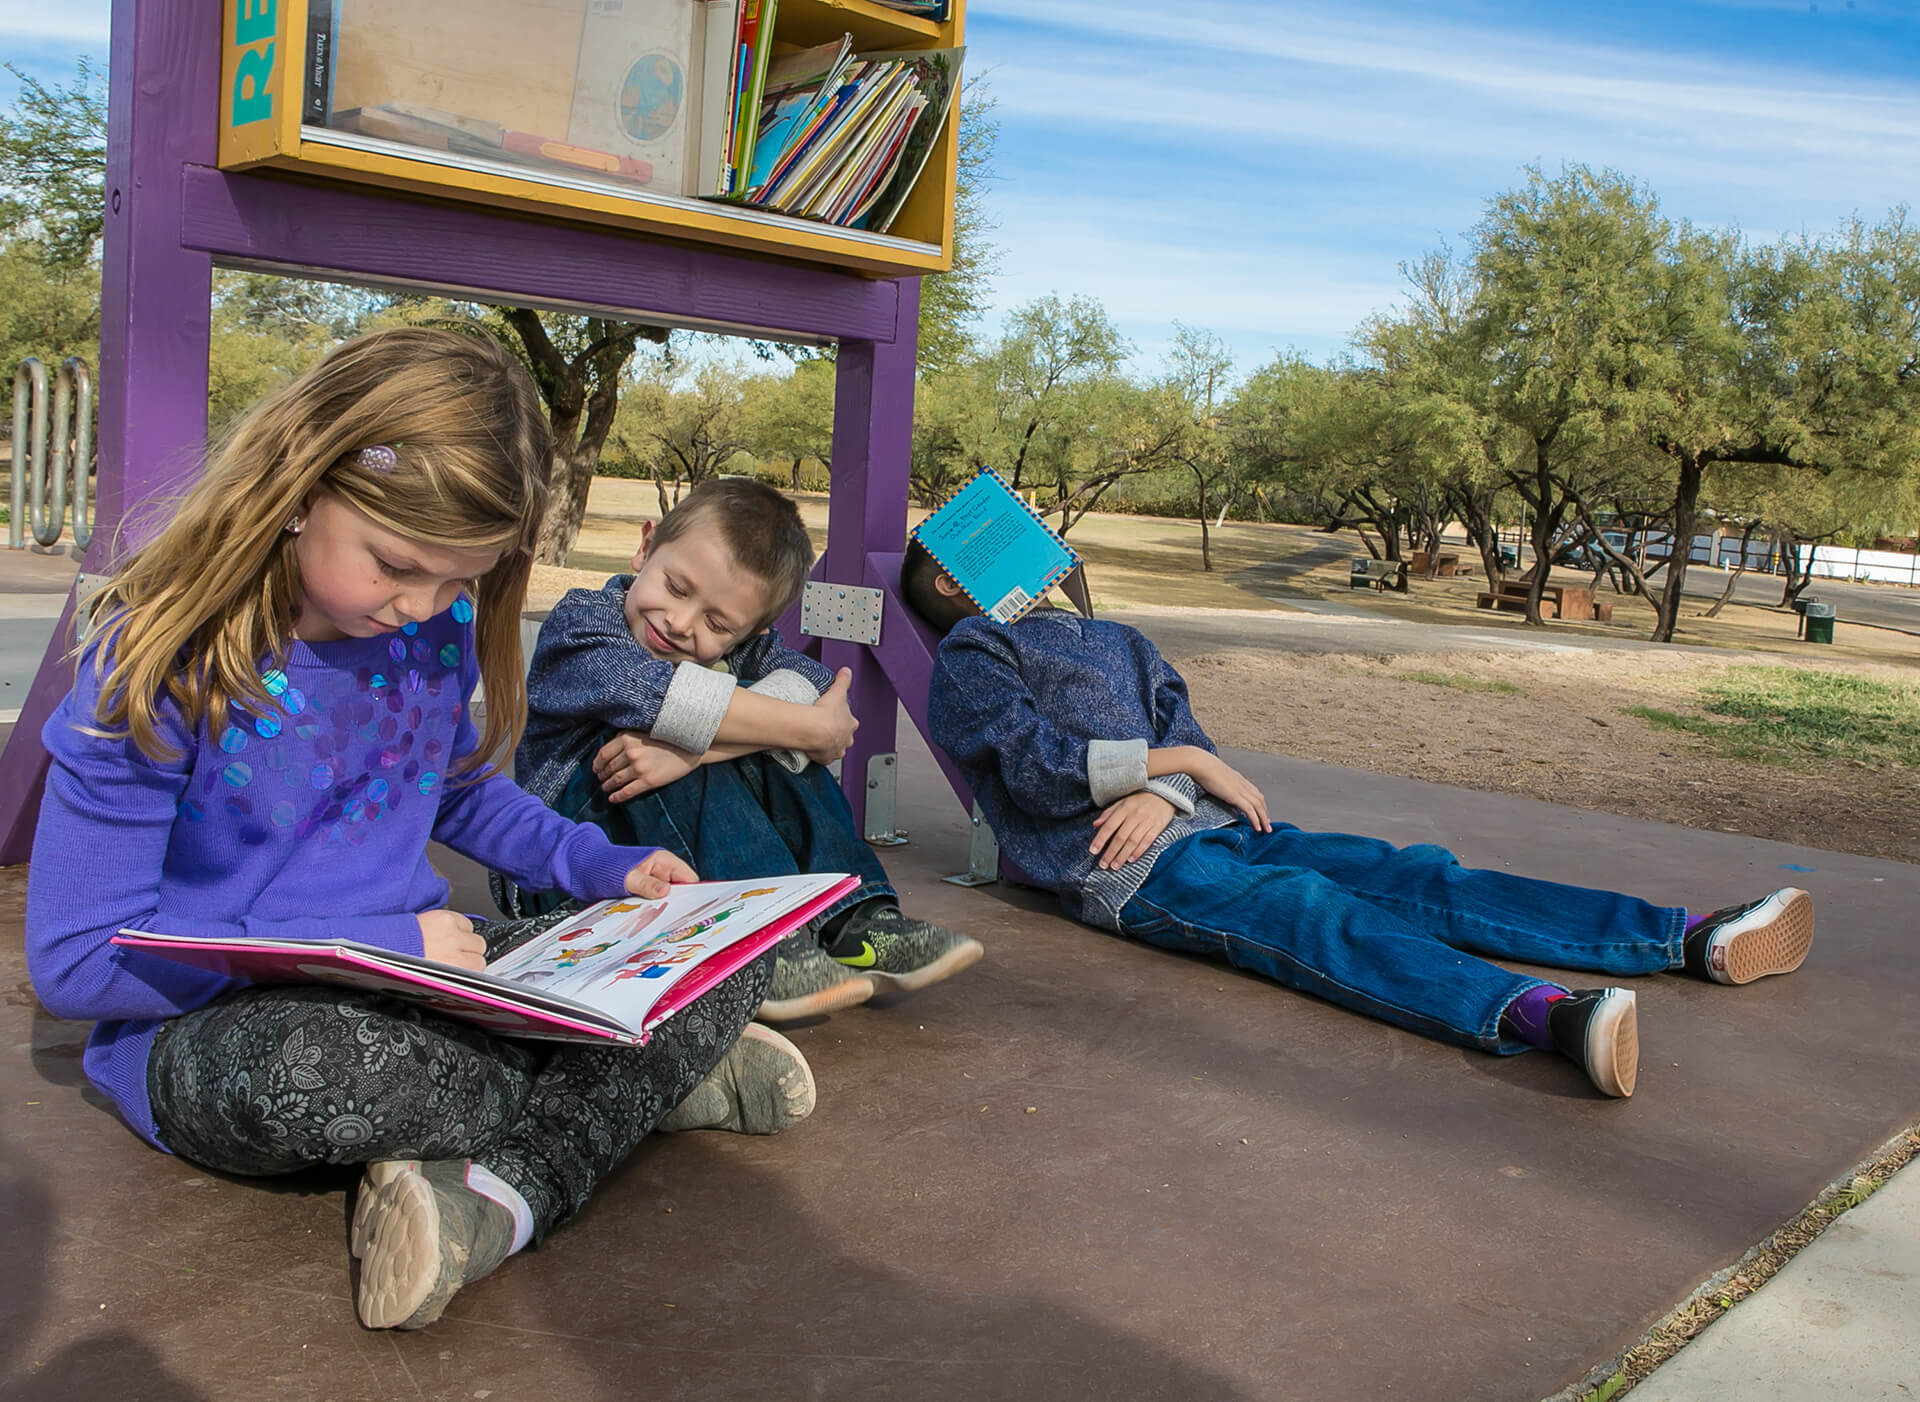 """Kathleen often uses environmental features available during the family session as spontaneous portrait props. Kathleen gave the children a simple prompt to do whatever they like with the free """"library"""" at the park and this is the result."""